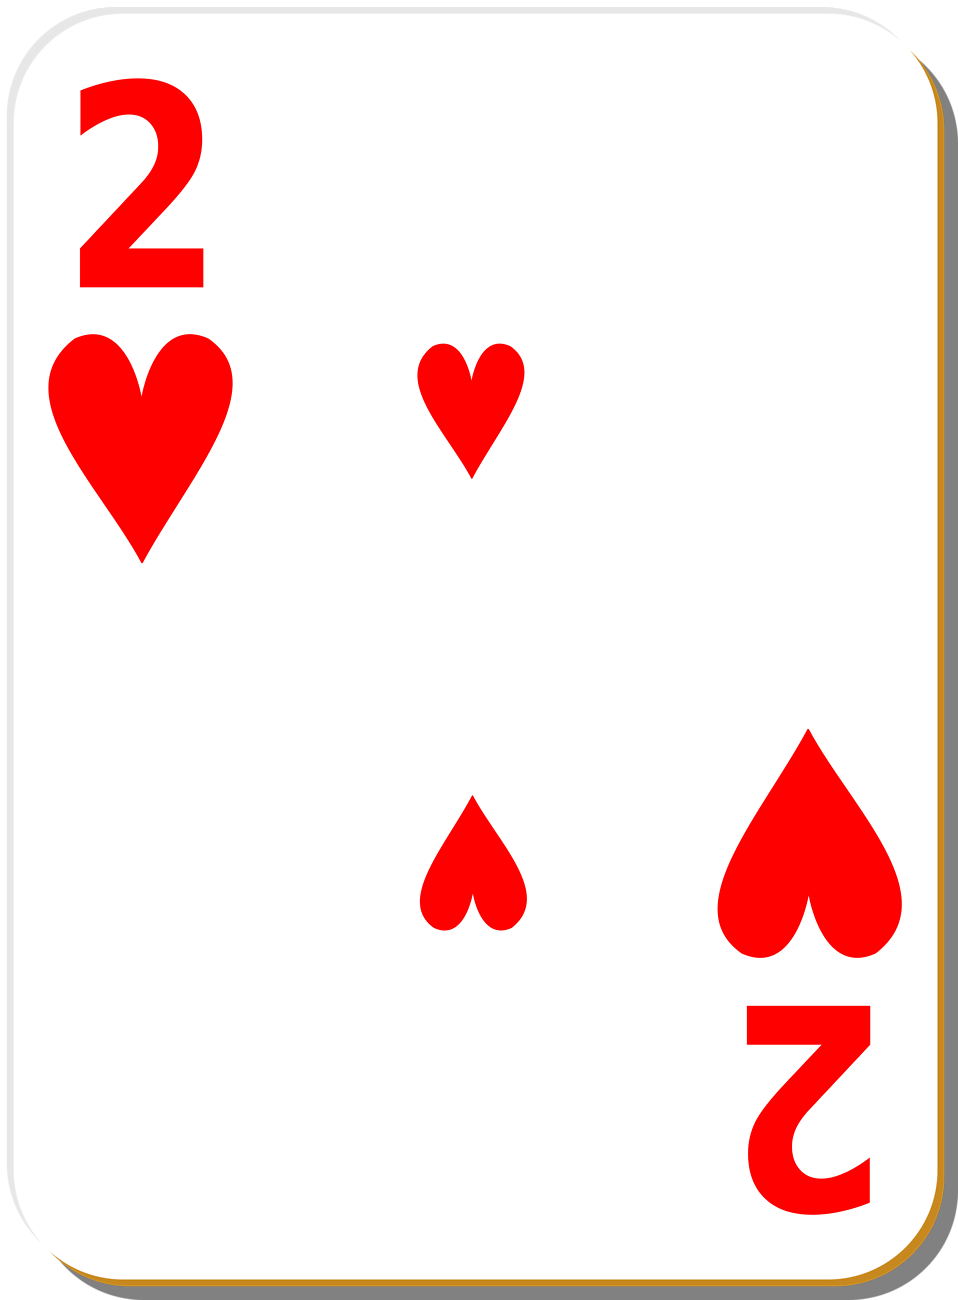 Deck of playing cards clipart.